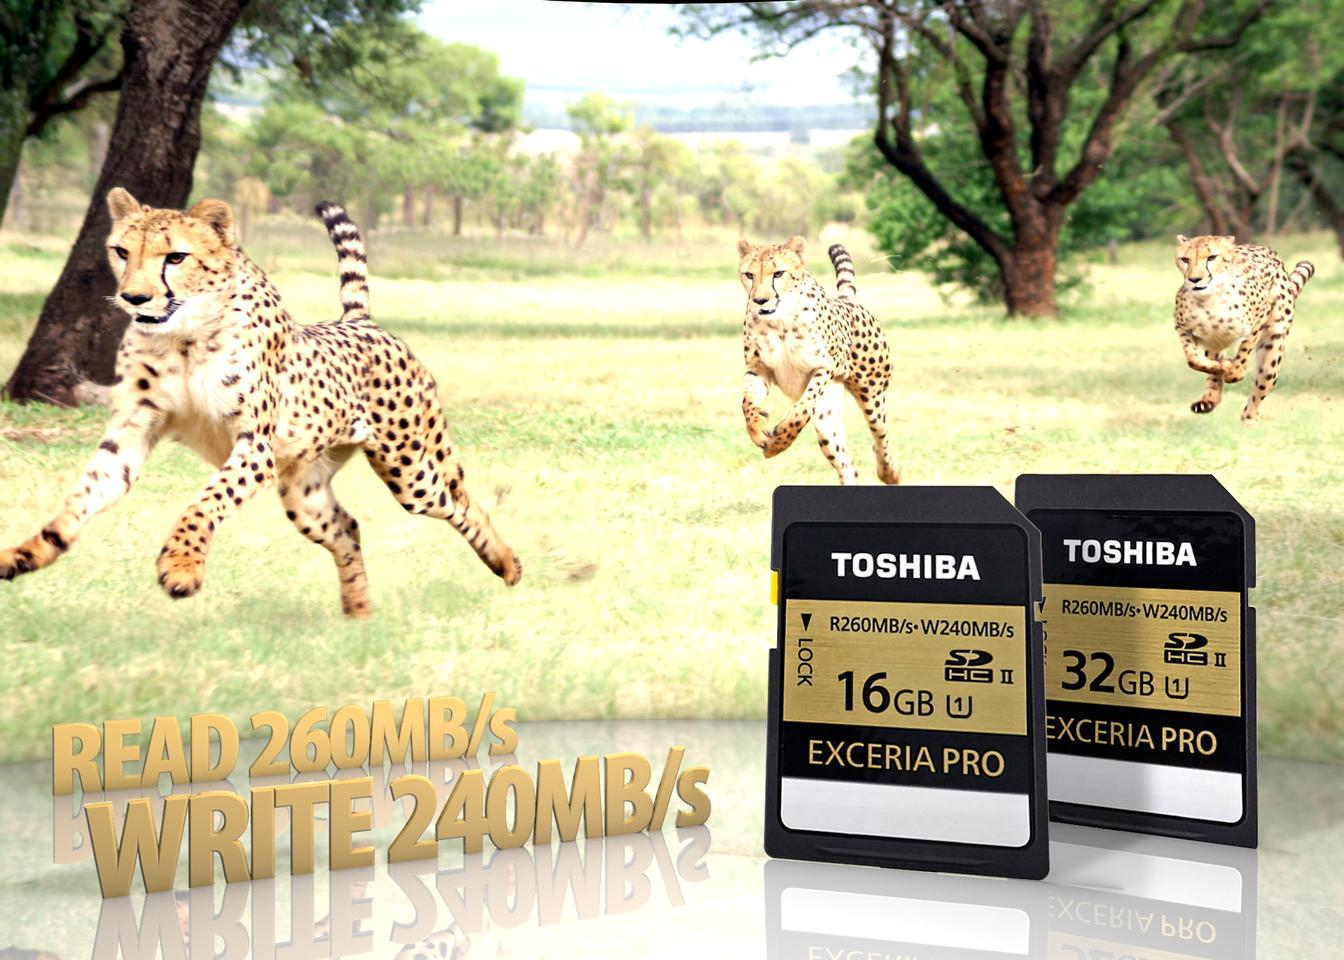 The Toshiba Exceria Pro SD cards will be available in 16 GB and 32 GB capacities